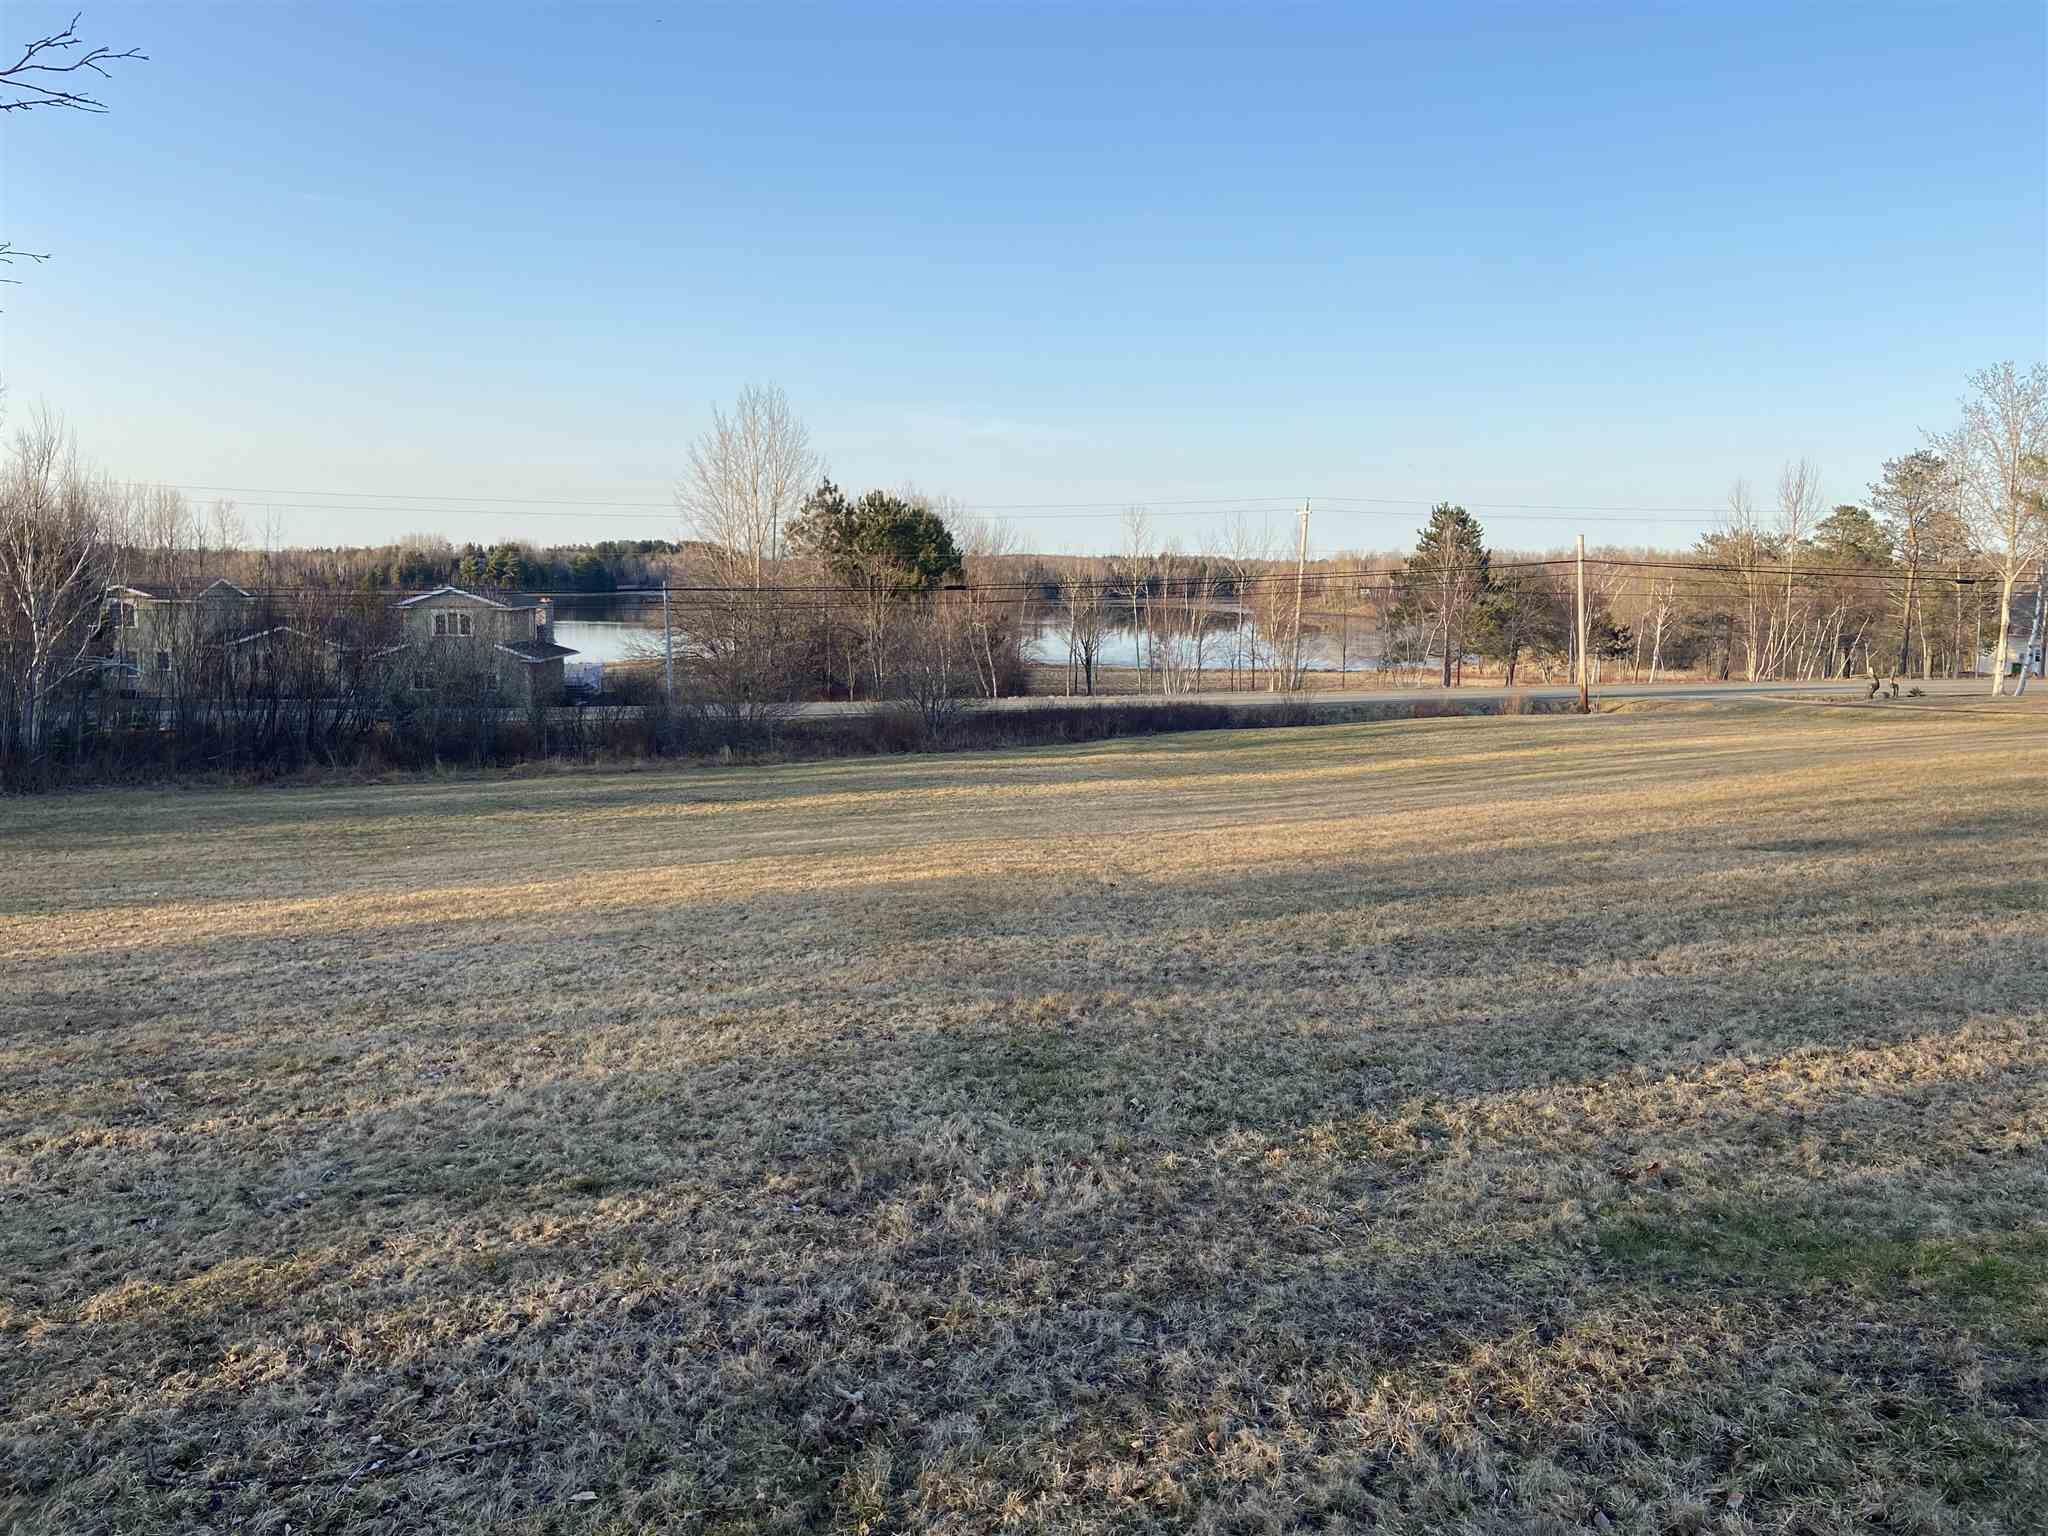 Main Photo: Lot 11-2 Little Harbour Road in Little Harbour: 108-Rural Pictou County Vacant Land for sale (Northern Region)  : MLS®# 202106494